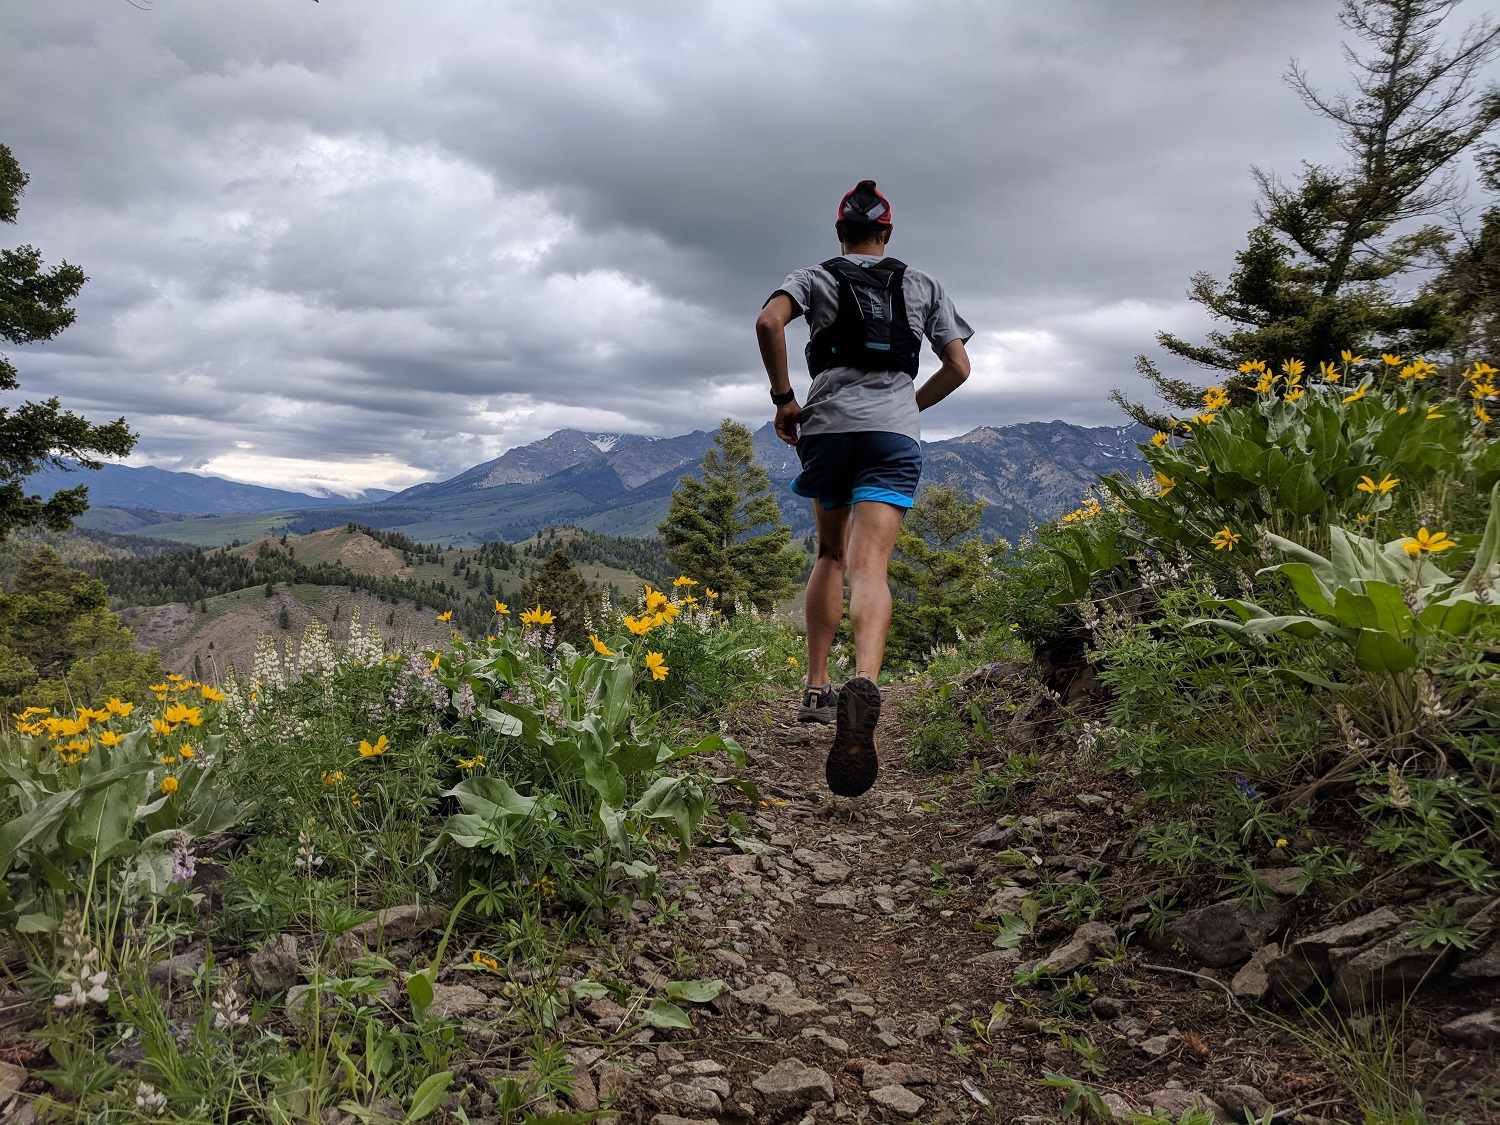 Andrew flying through the arrowleaf balsamroot so ubiquitous to the mountain trails around Ketchum ID